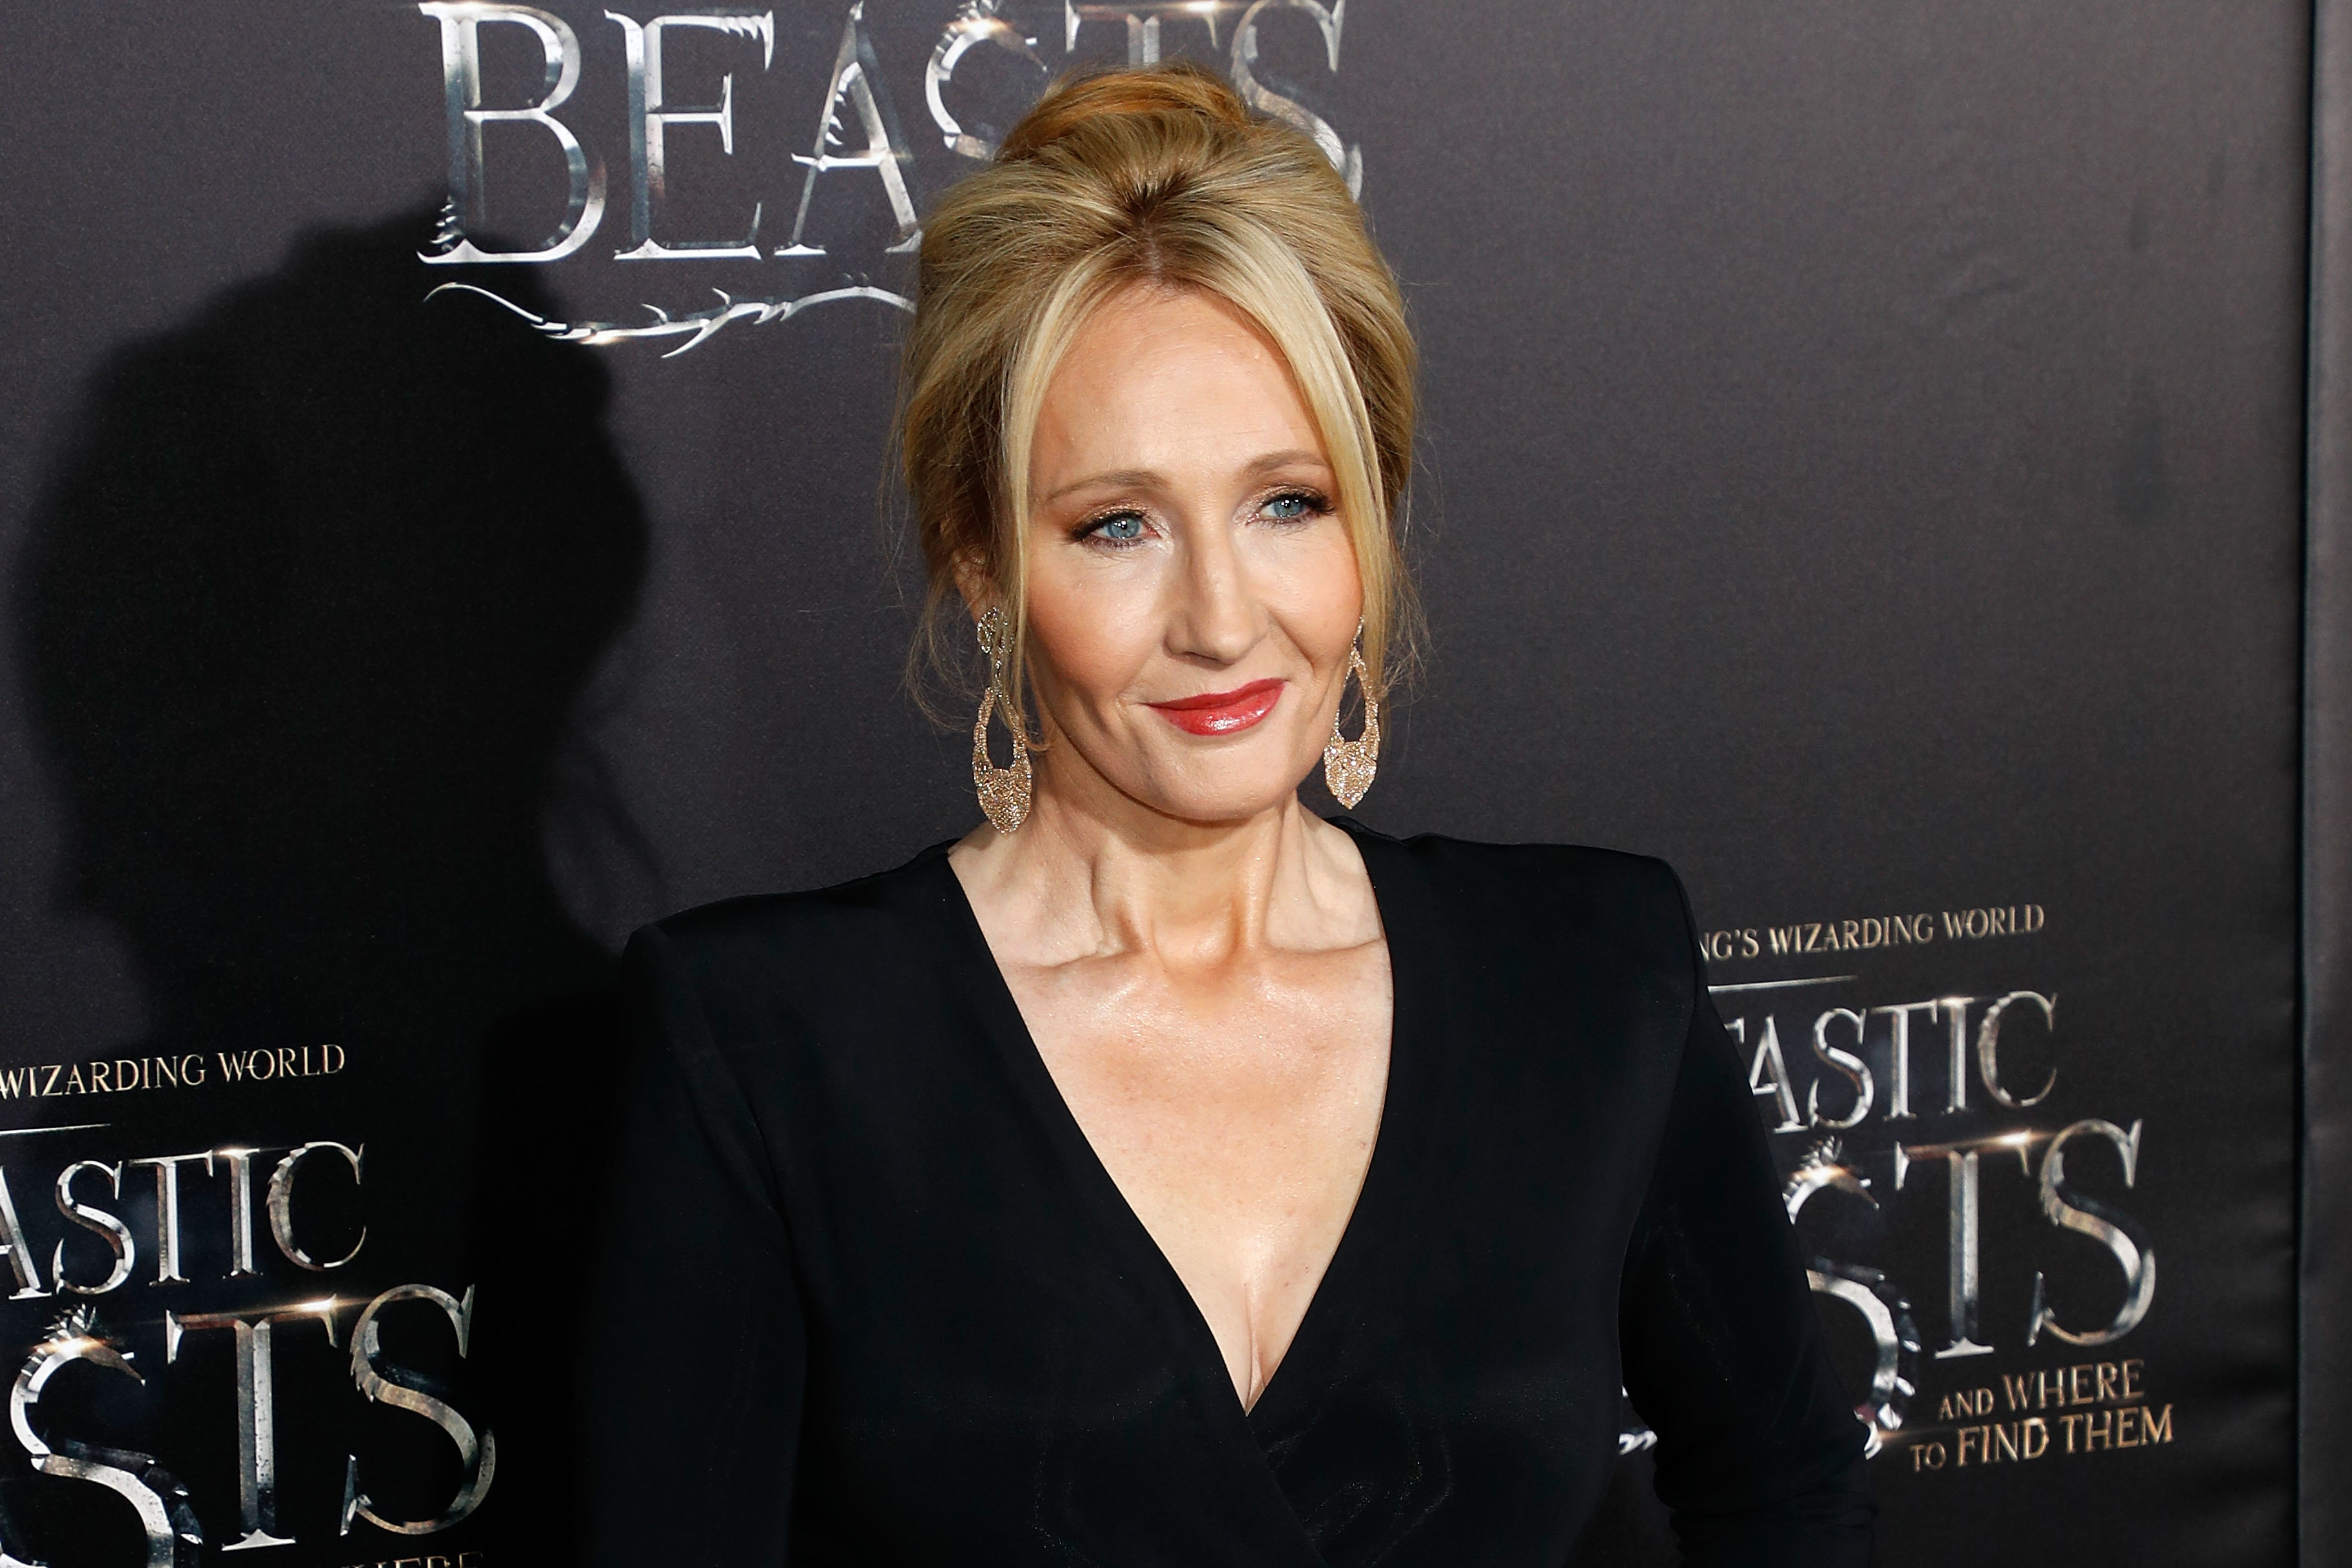 Author J.K. Rowling attends the premiere of  Fantastic Beasts and Where to Find Them  at Alice Tully Hall, Lincoln Center on November 10, 2016 in New York City.